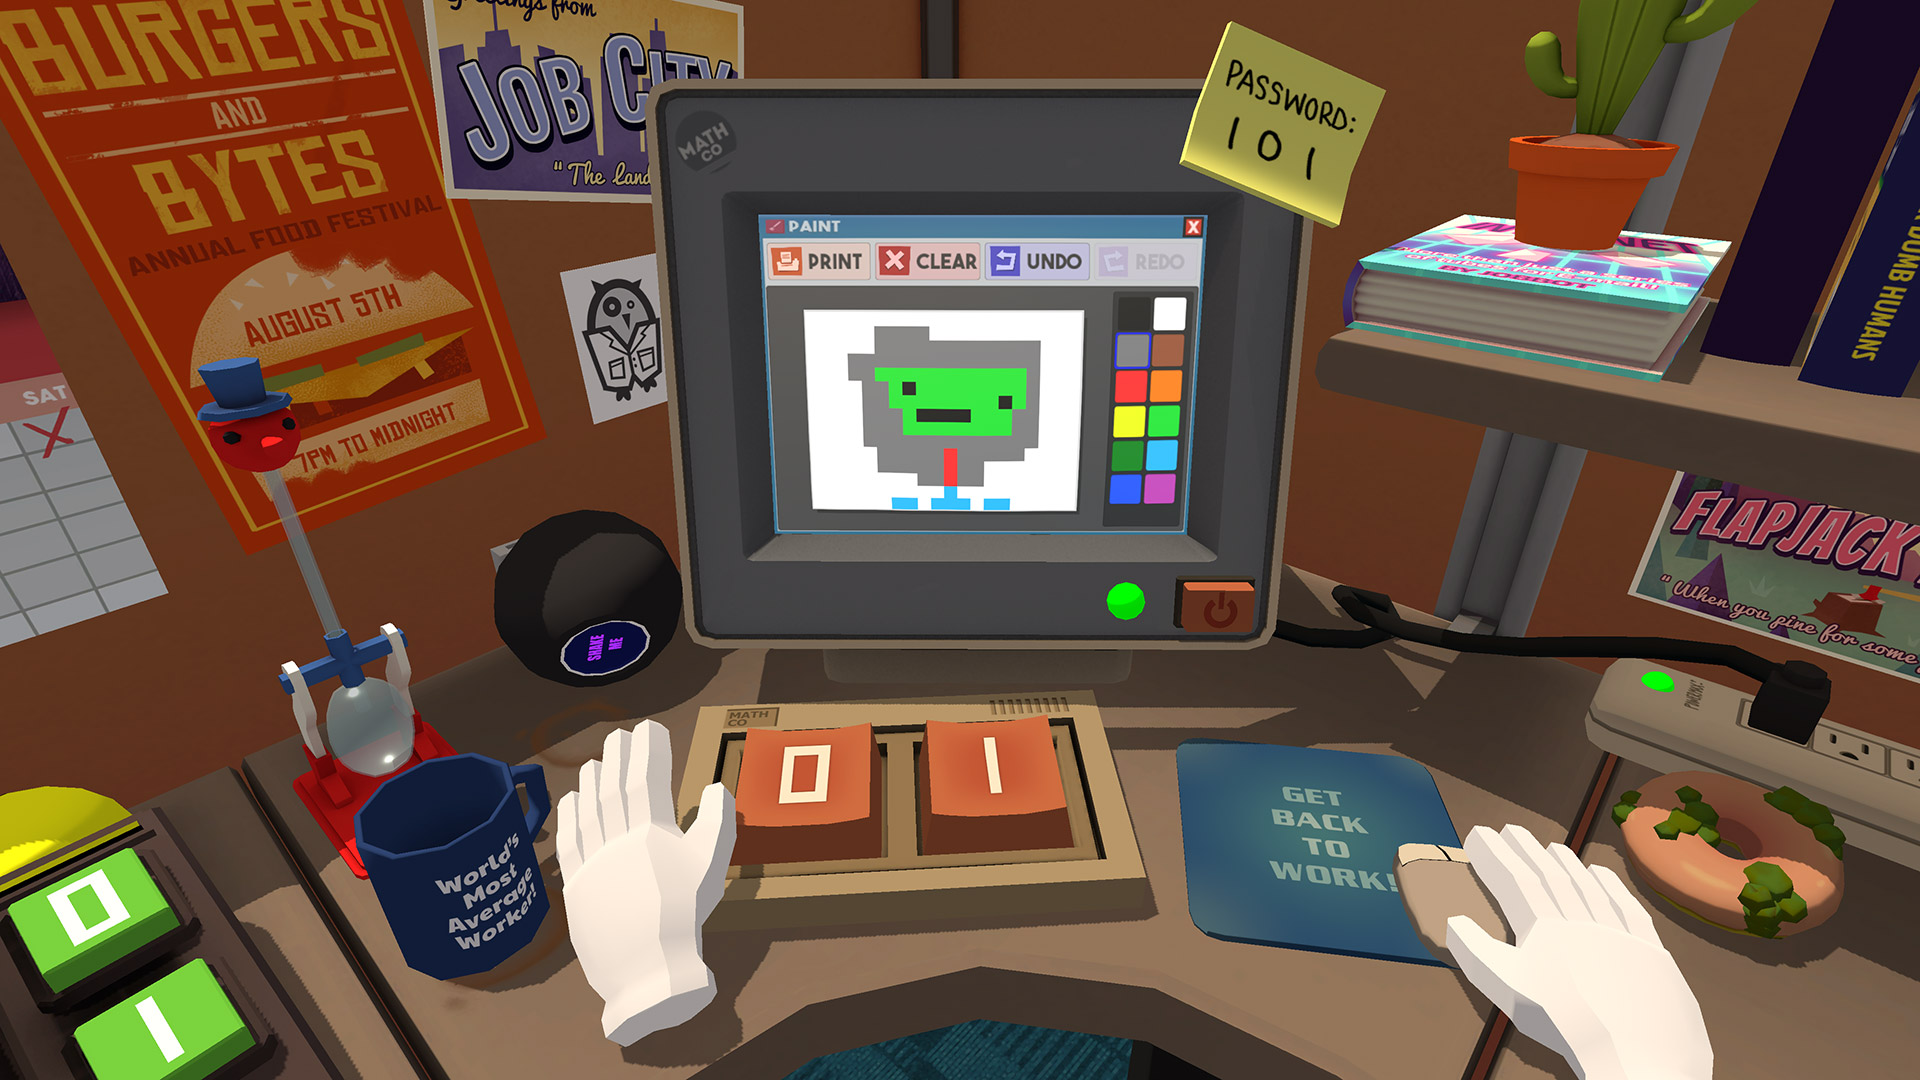 Google Studio Owlchemy Labs Affirms Work on New VR Game, Details Expected This Year